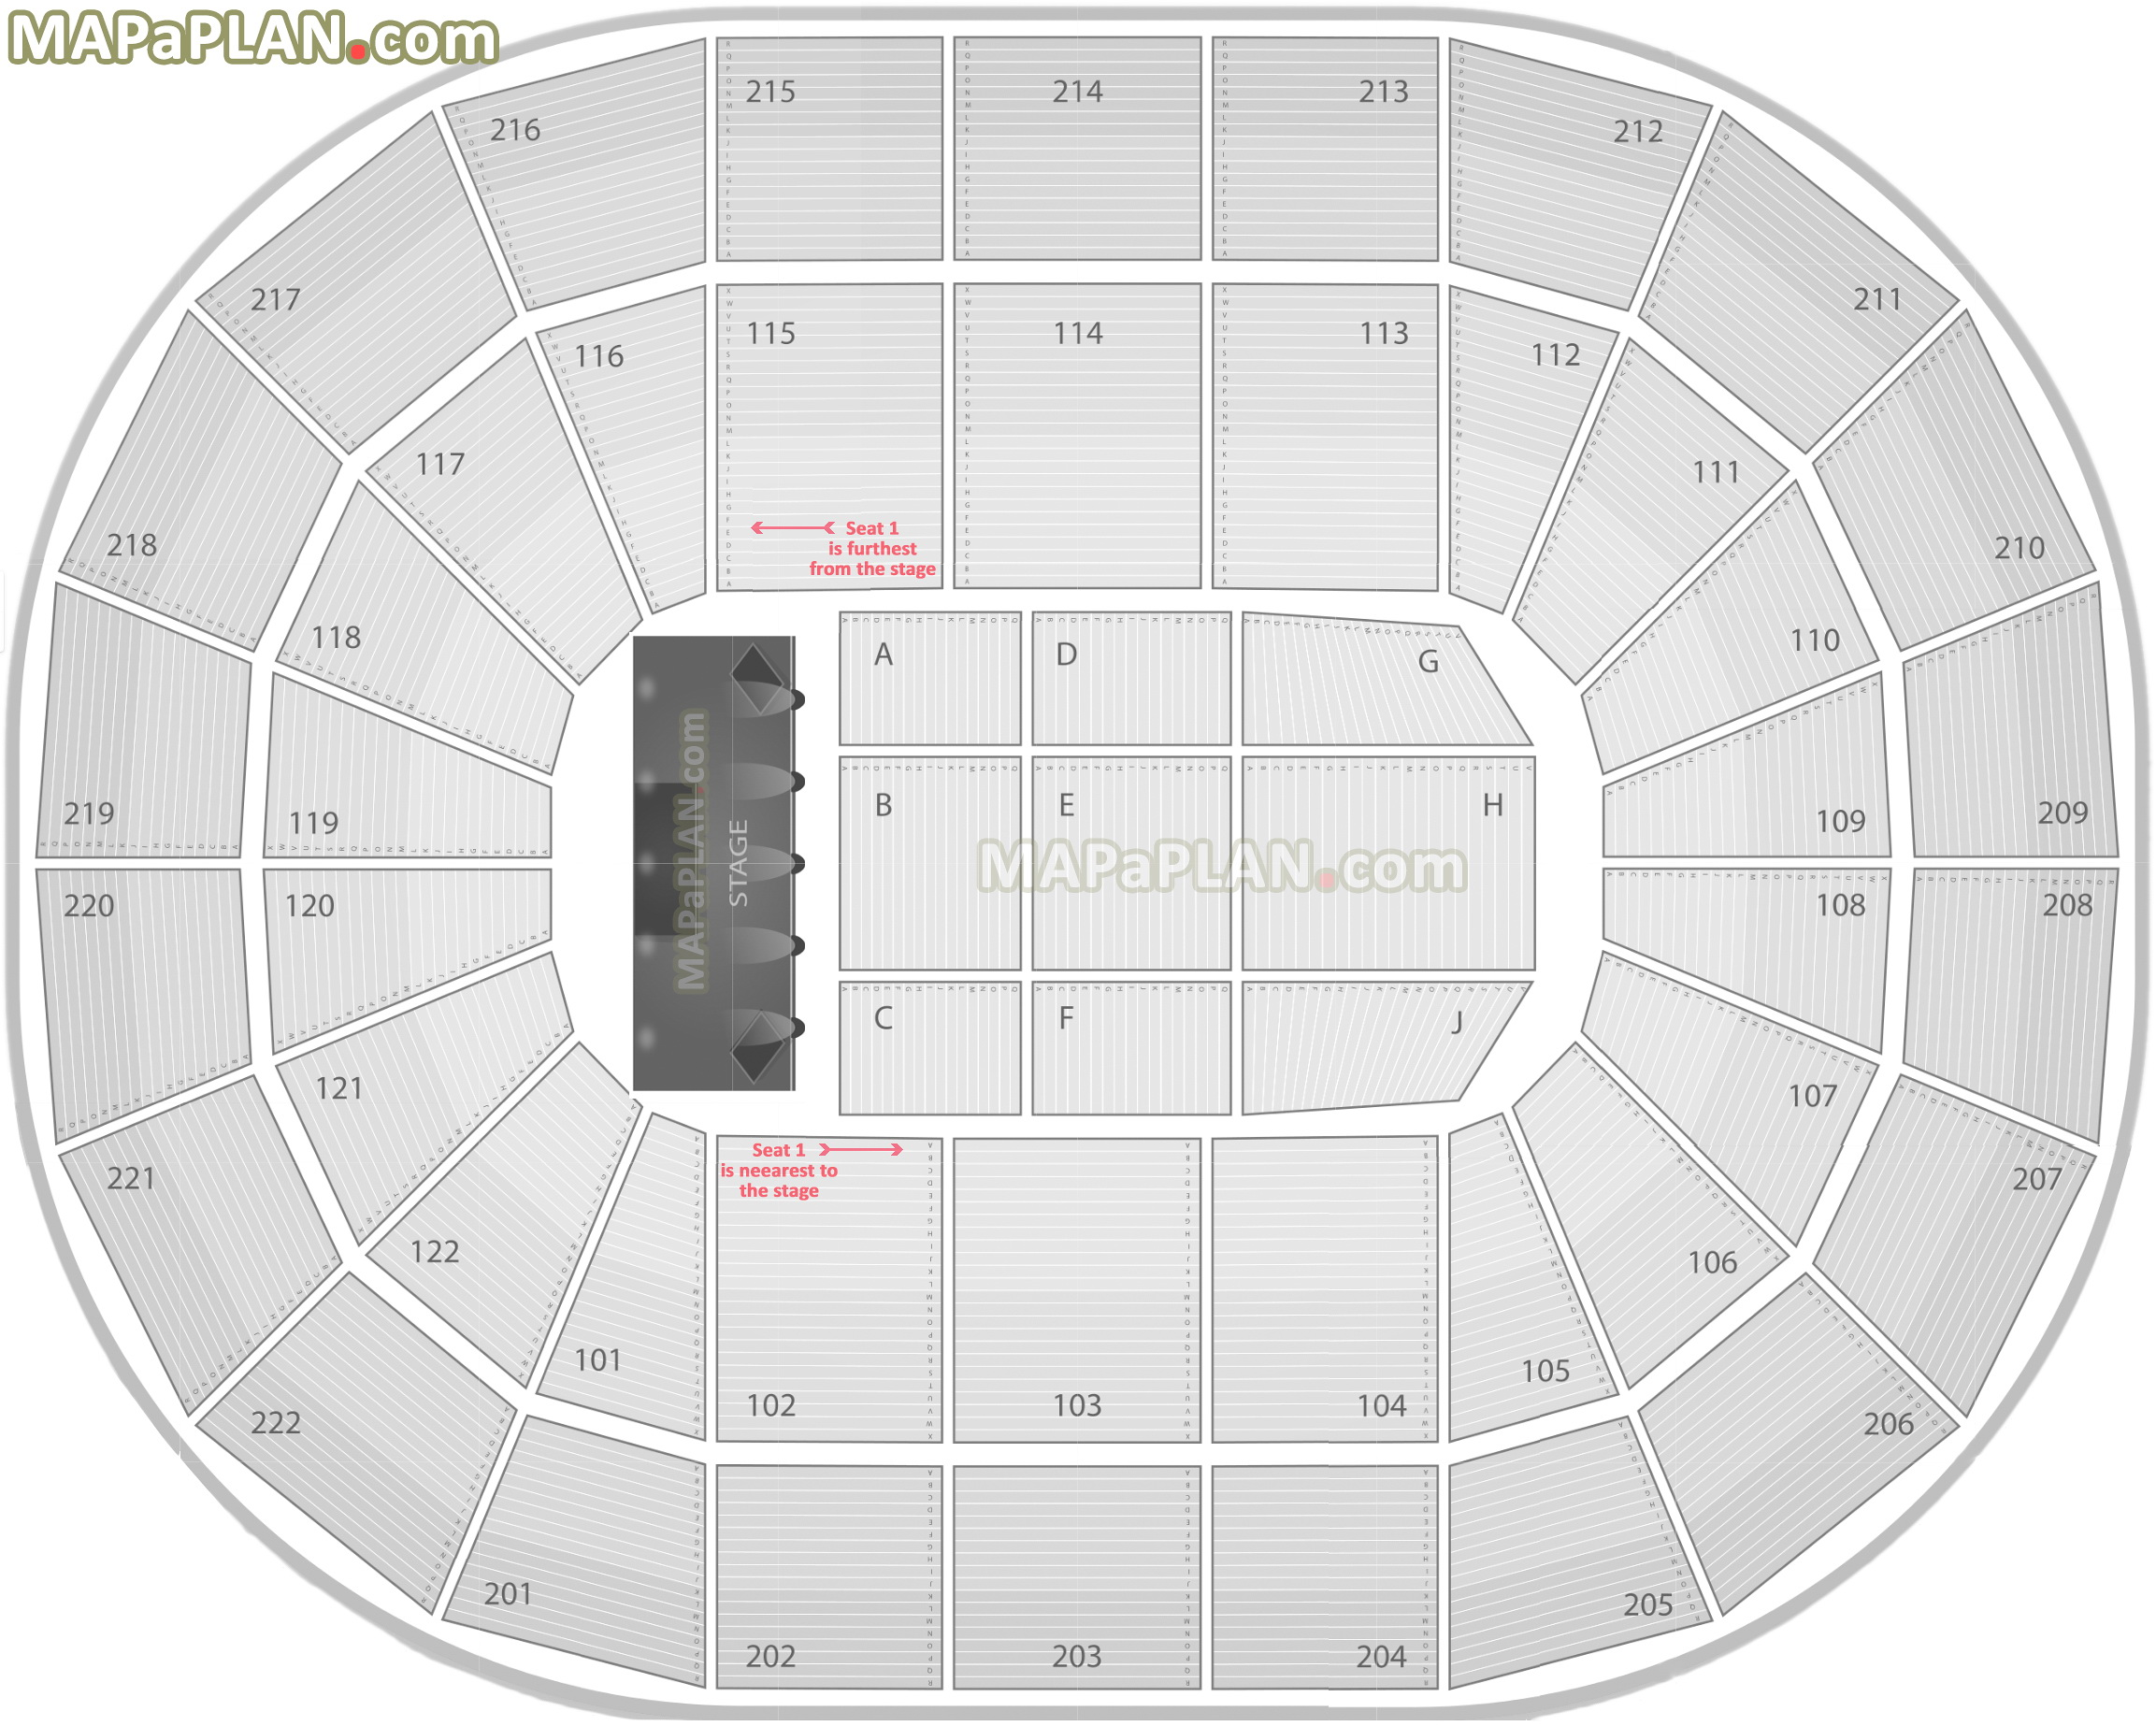 arena stage diagram car sound system scottrade center seating chart with rows and seat numbers